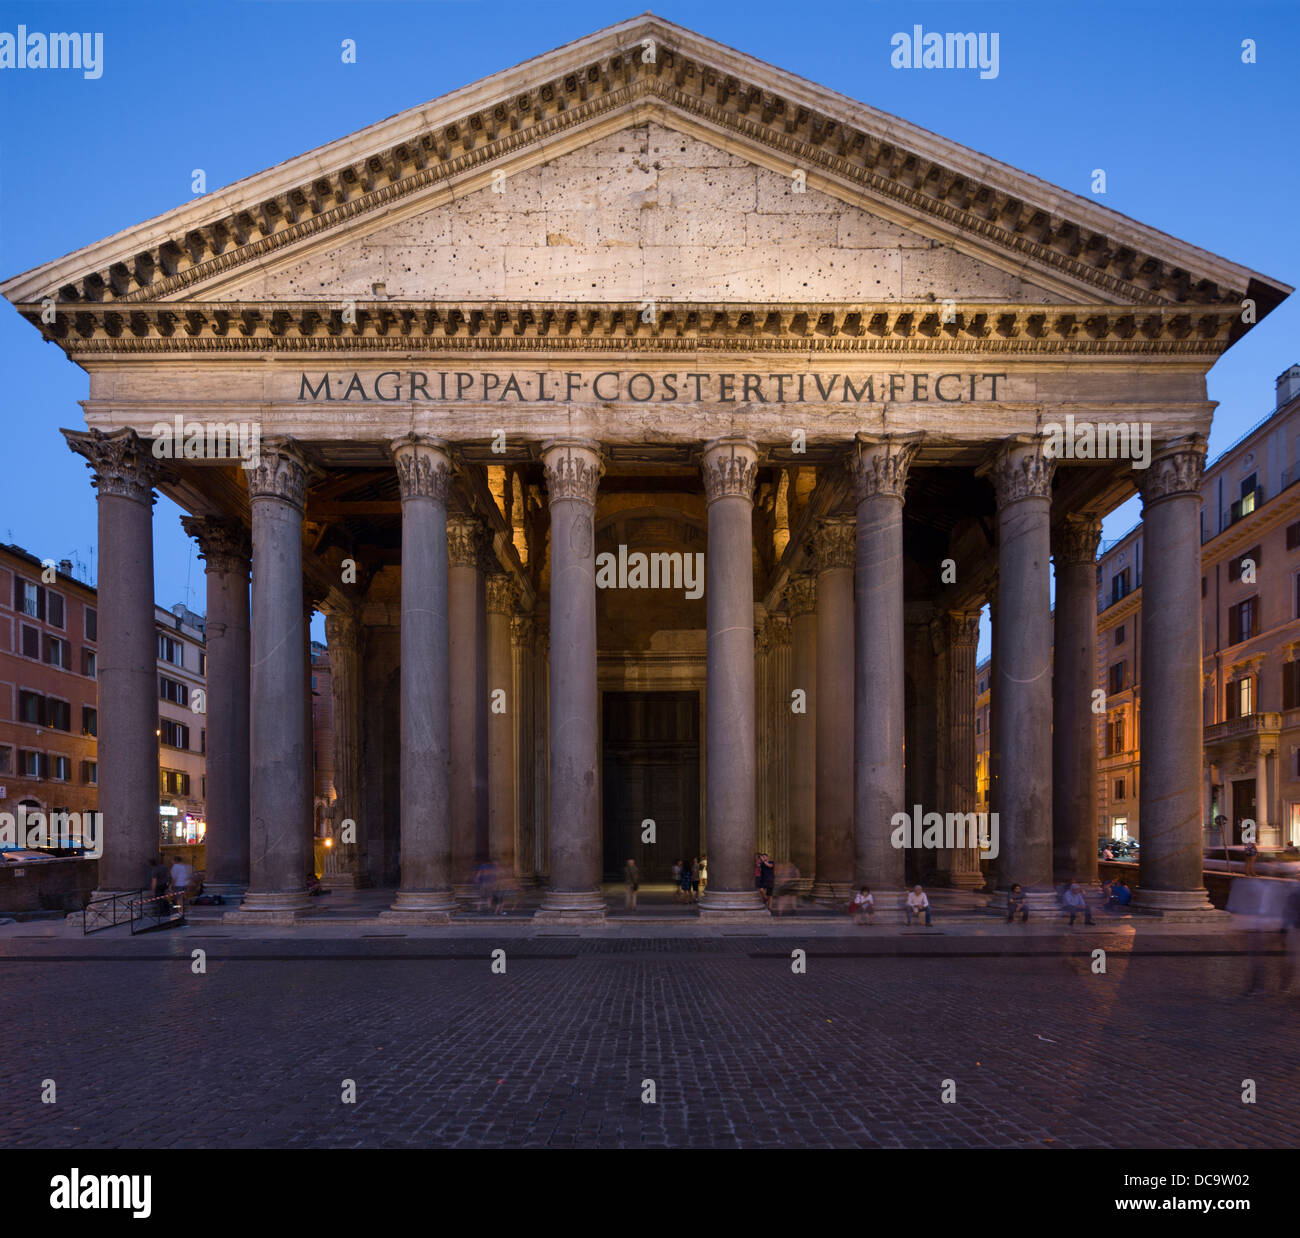 entrance columns and pediment of Pantheon, Rome, Italy Stock Photo